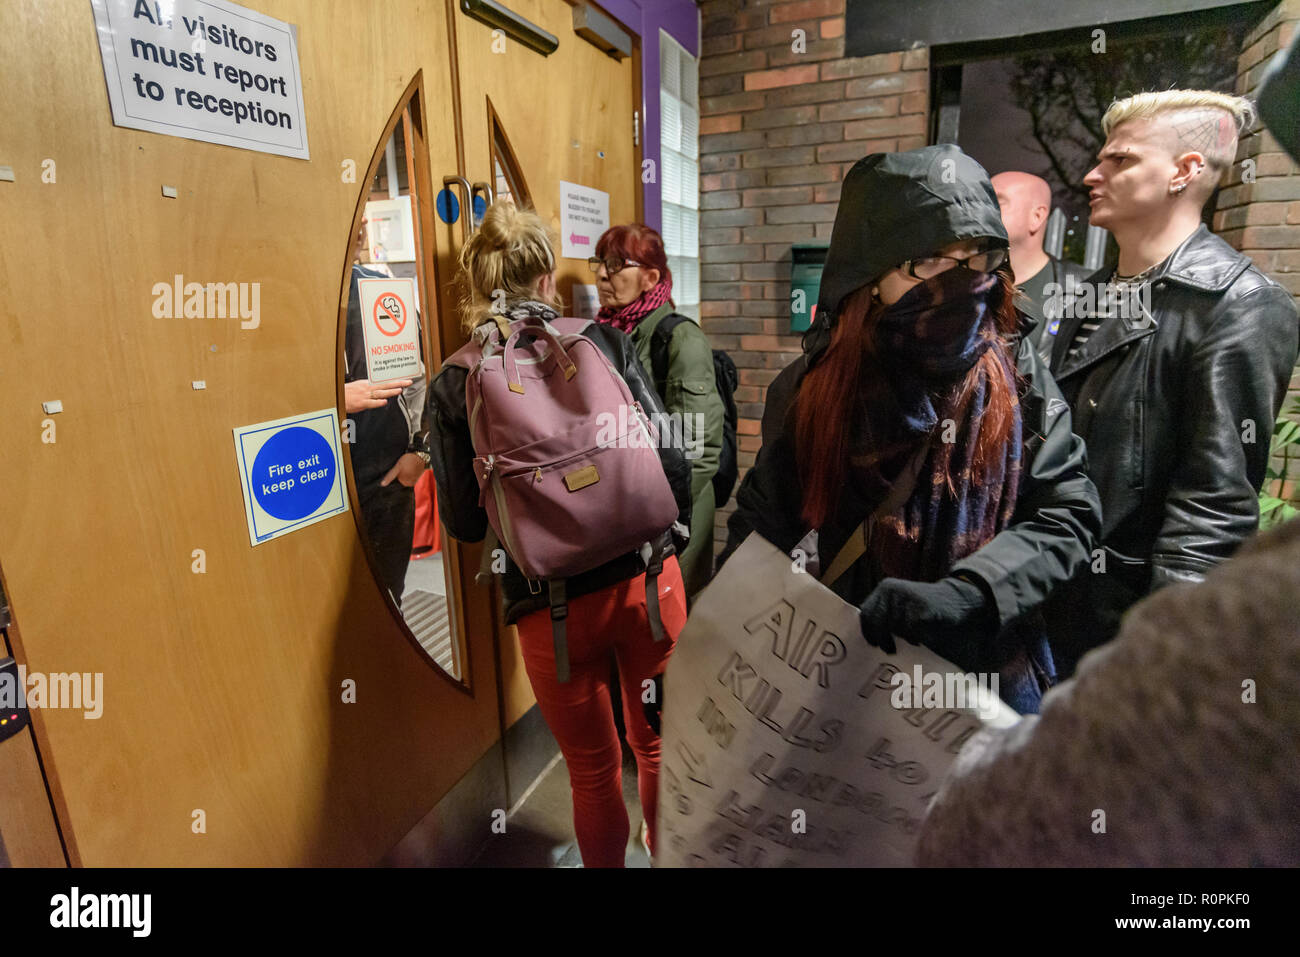 London, UK. 6th November 2018. Campaigners trying to stop Lewisham Council and developer Peabody from demolishing Reginald House and building on the community Old Tidemill Wildlife Garden  try to attend the New Cross Assembly Meeting where Lewisham Mayor and local councillors were expected to take questions from the public. . Some protesters had gone inside the meeting earlier, but others wanted to go in for the Mayor's question time but were not admitted by the time I left, 15 minutes after it had been scheduled to start and it was not clear if the Mayor intended coming. Credit: Peter Marshal - Stock Image